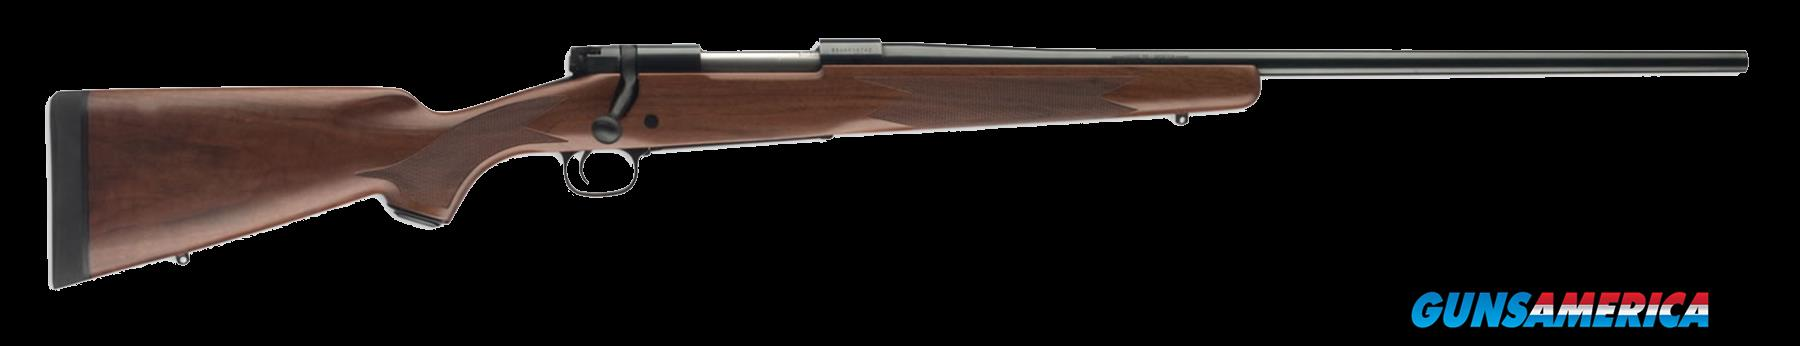 "Winchester Guns 535202226 70 Sporter Bolt 270 Win 24"" 5+1 Grade I Walnut Stk Blued  Guns > Rifles > W Misc Rifles"